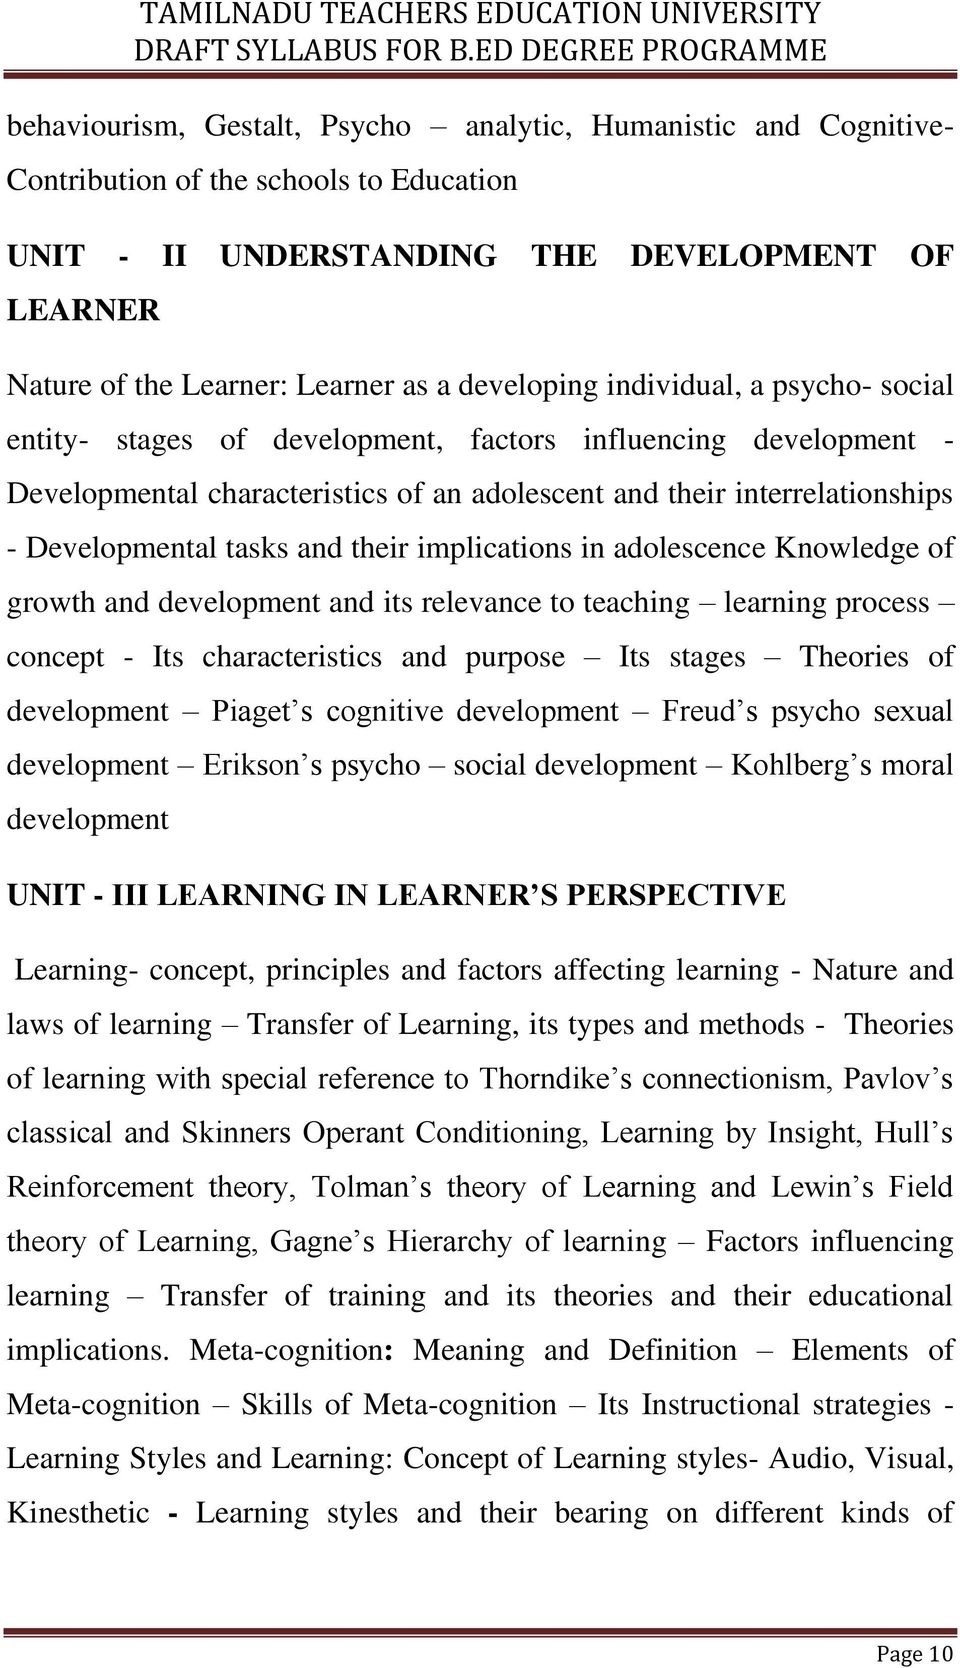 tasks and their implications in adolescence Knowledge of growth and development and its relevance to teaching learning process concept - Its characteristics and purpose Its stages Theories of